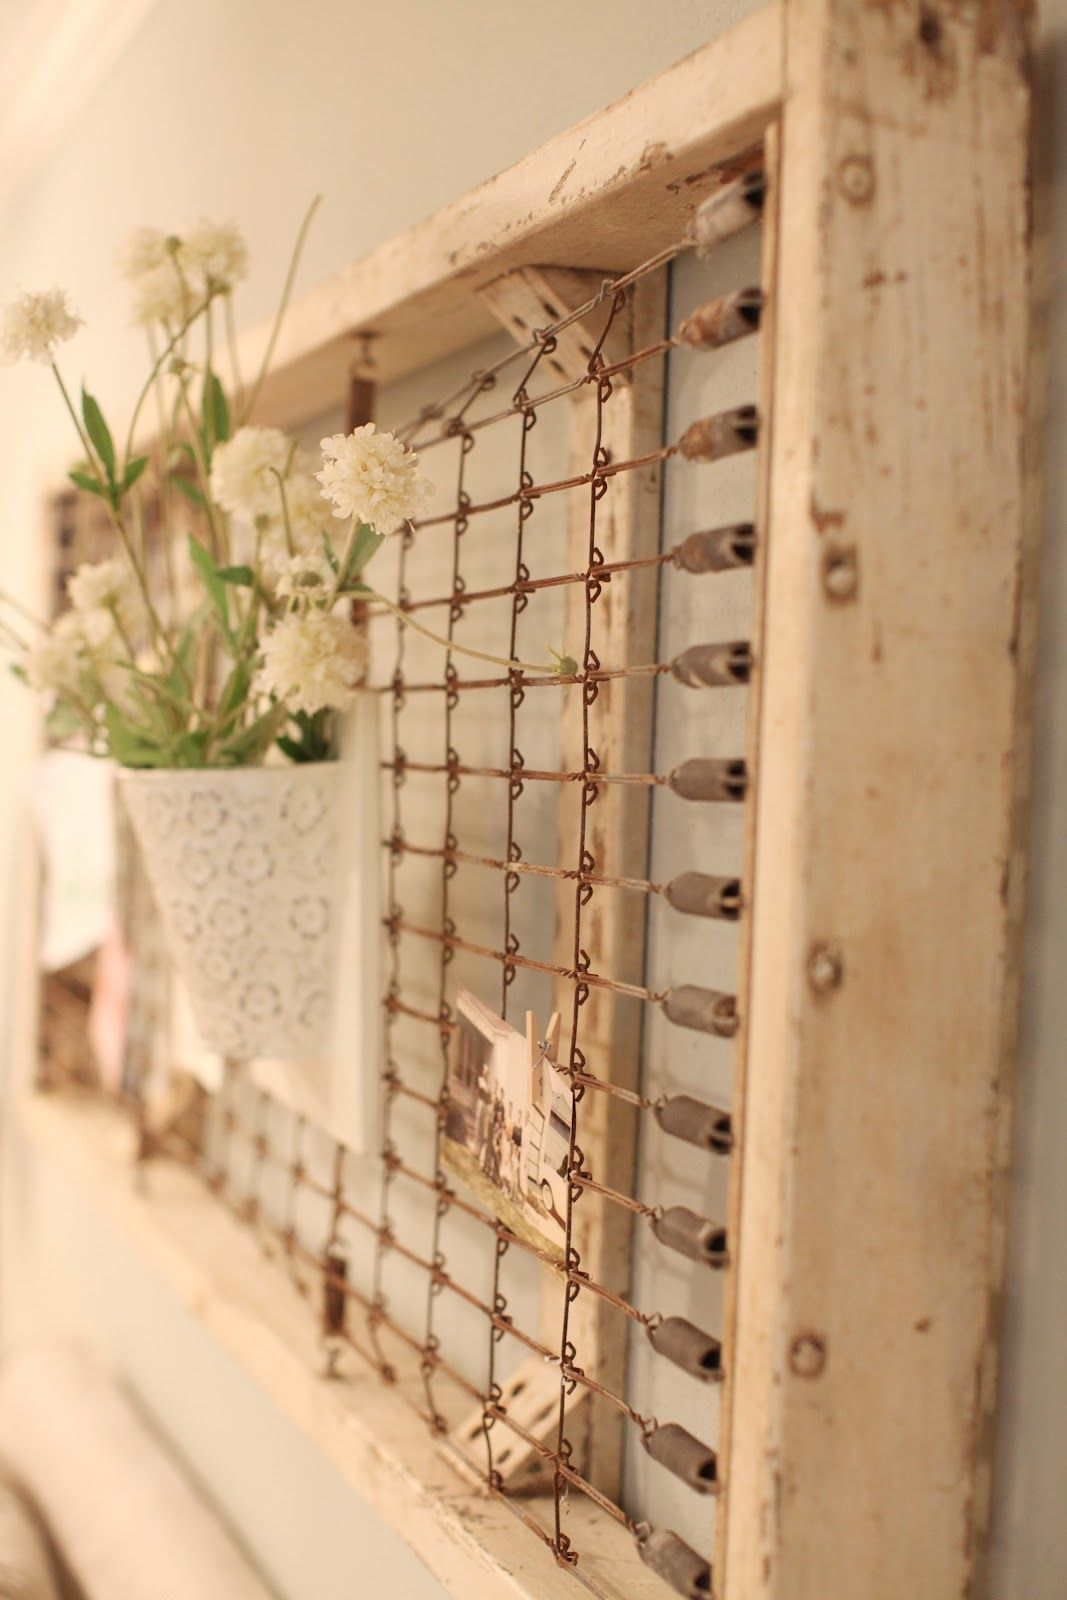 Try This DIY Project! Turn an Old Box Spring Mattress